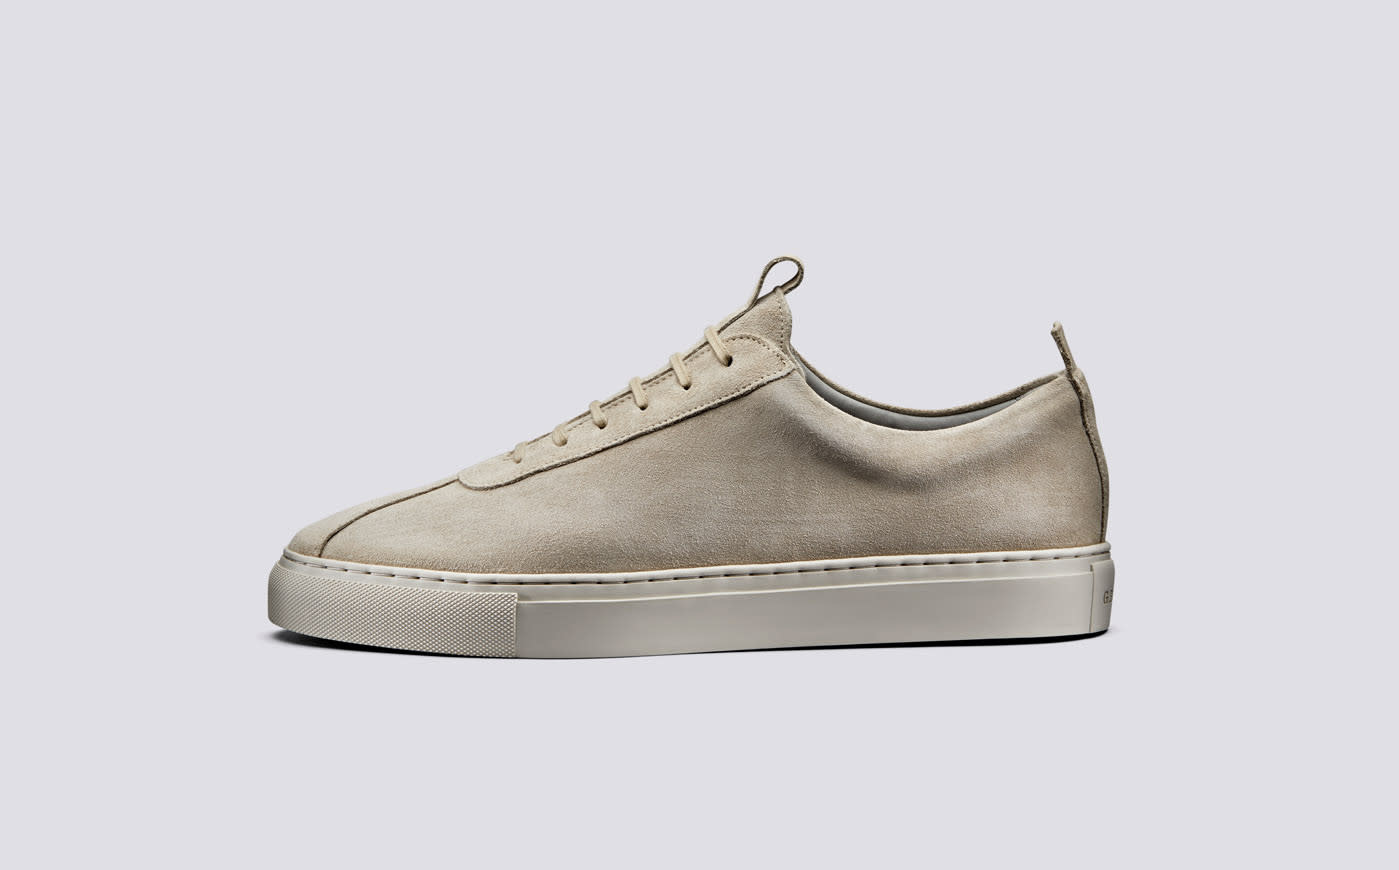 Sneaker 1 Stone Suede Oxfords Leather-2